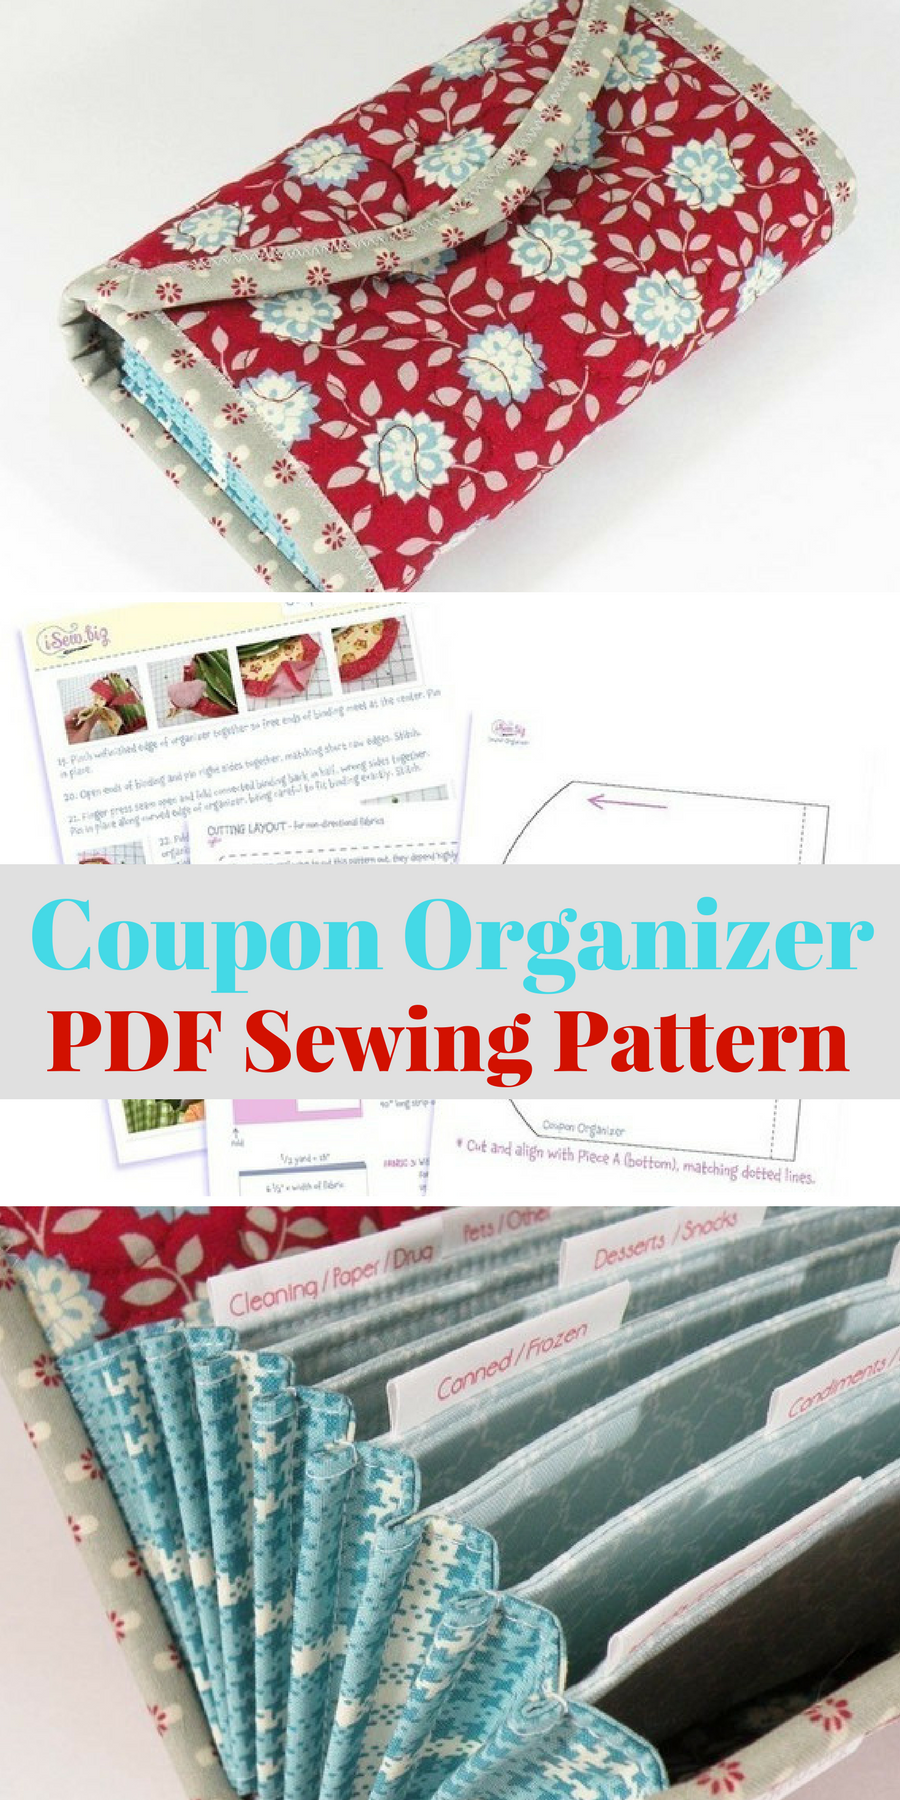 Coupon Organizer PDF SEWING PATTERN. Love the idea of a DIY project ...